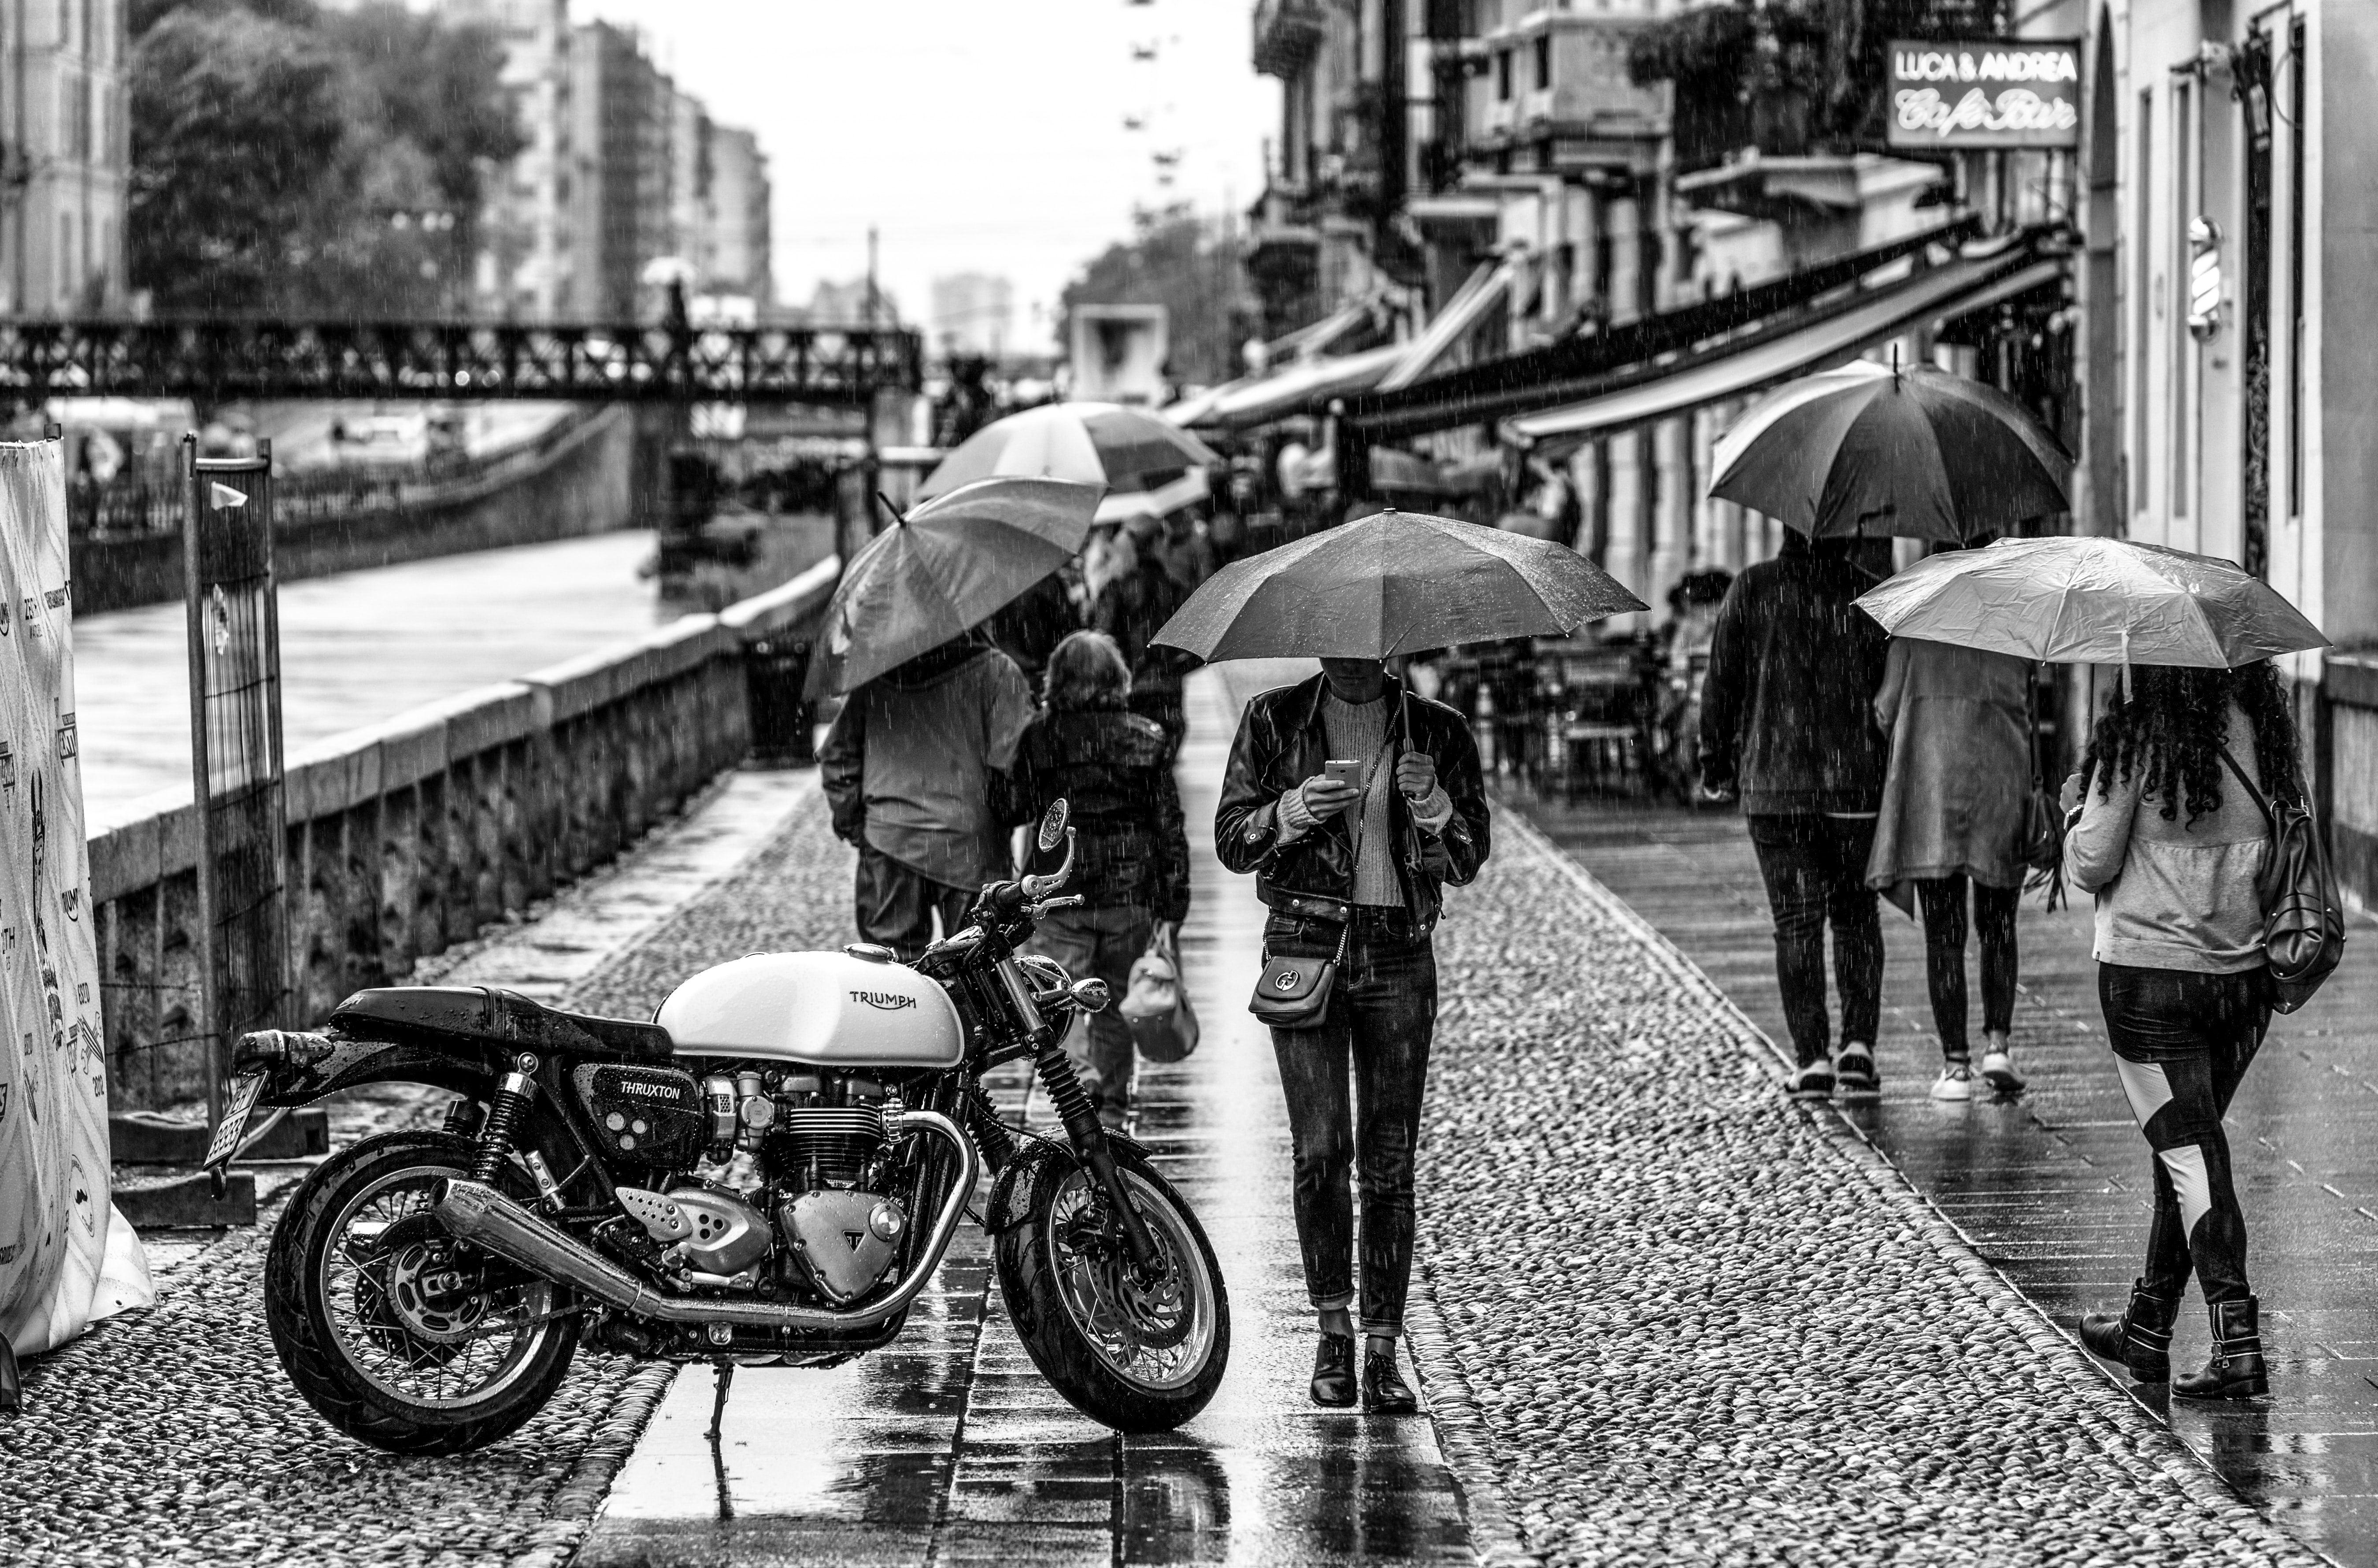 person under umbrella beside motorcycke